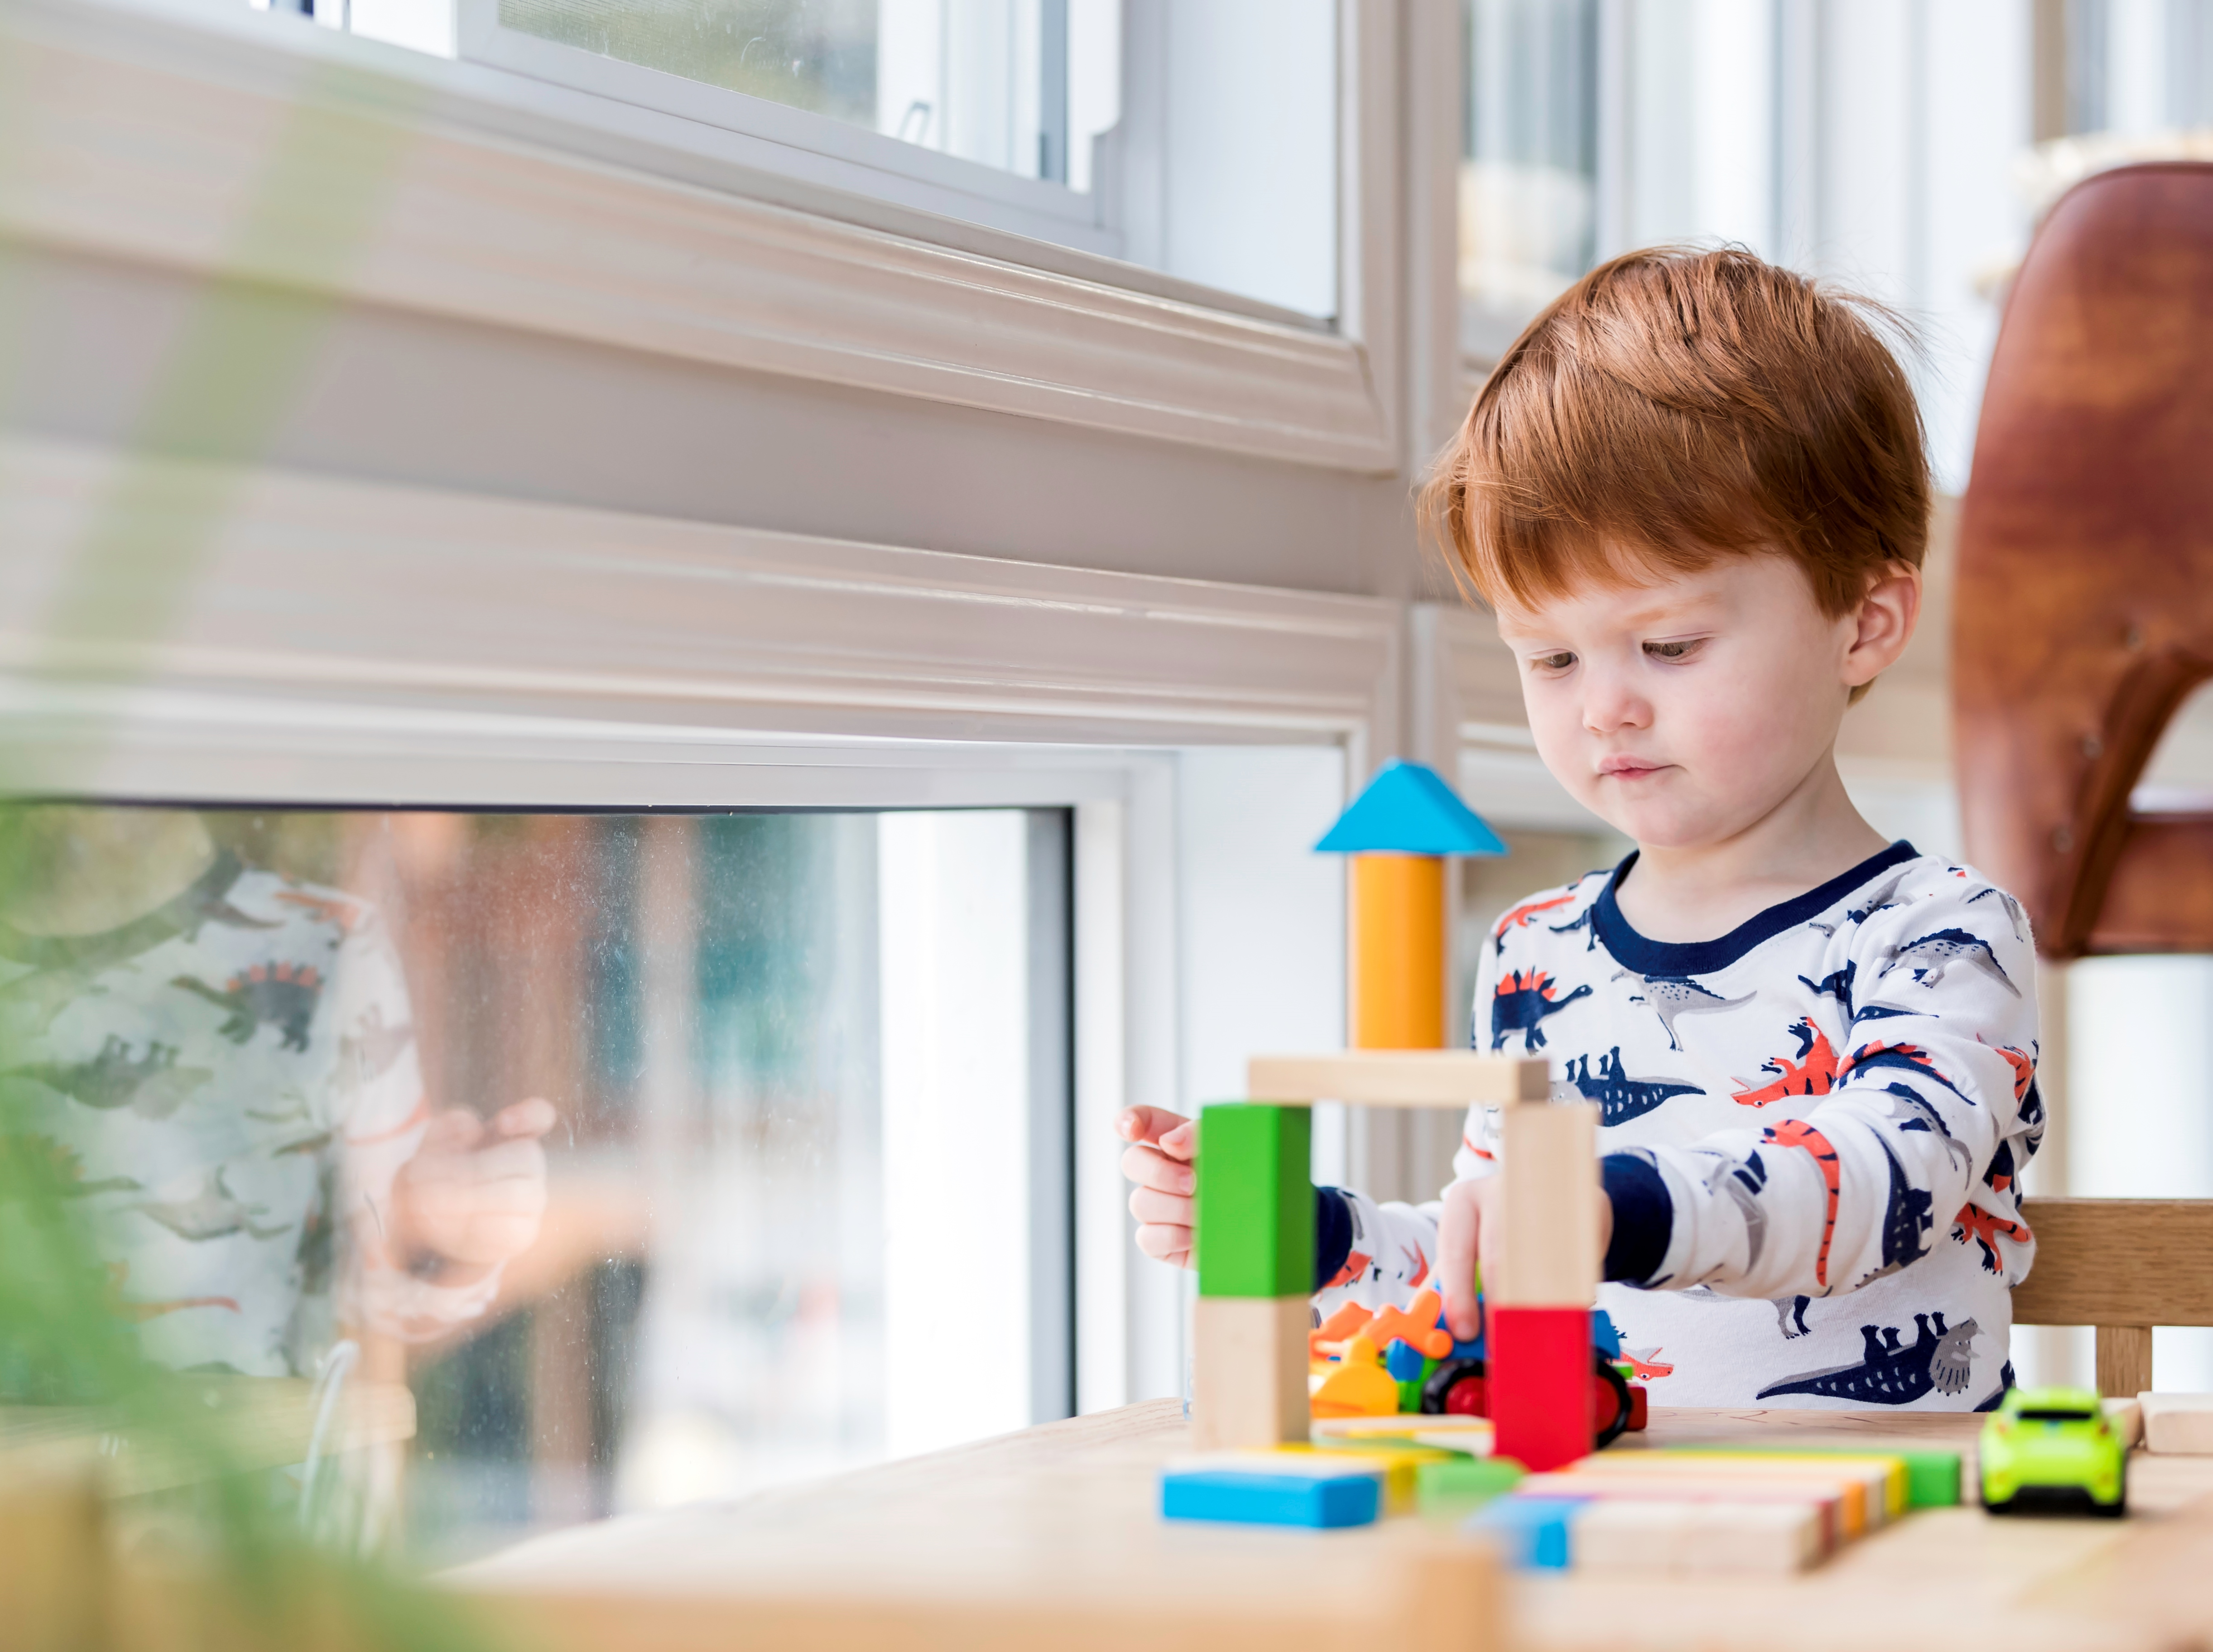 Newswise: GettyImages%20Baby%20Boy%20Playing%20with%20Colorful%20Blocks.jpg